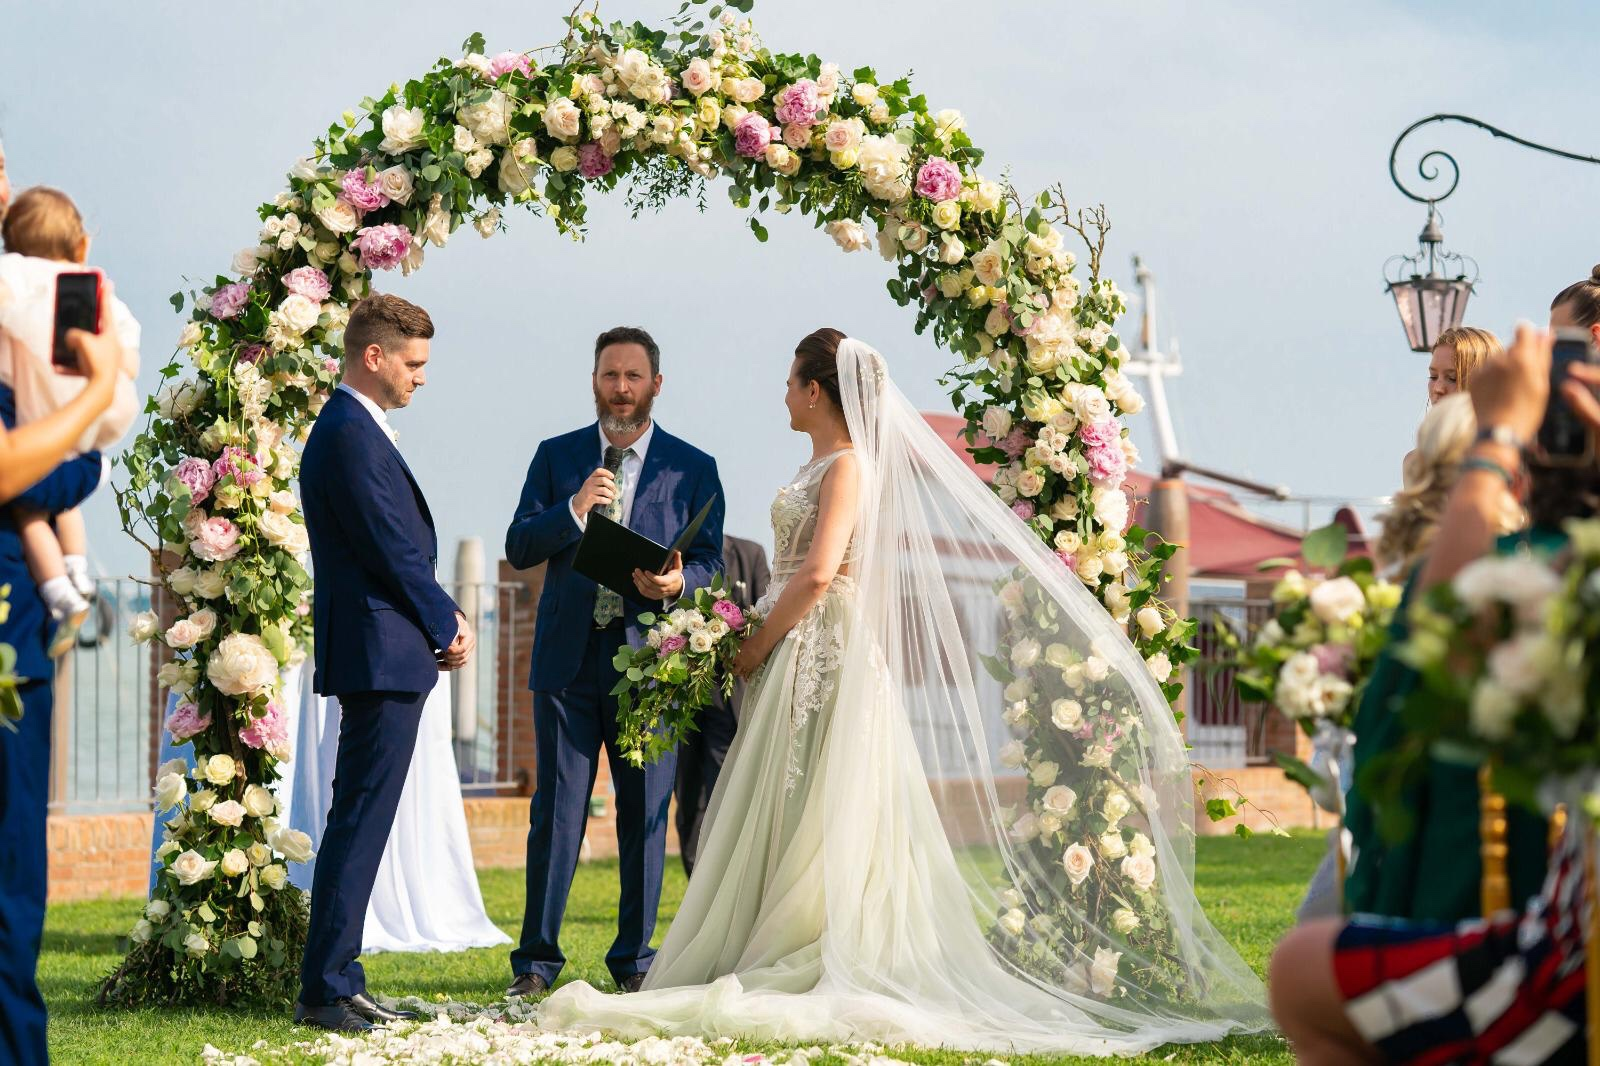 Giulia and Carlo - wedding day, 15th June, 2019 - photos: